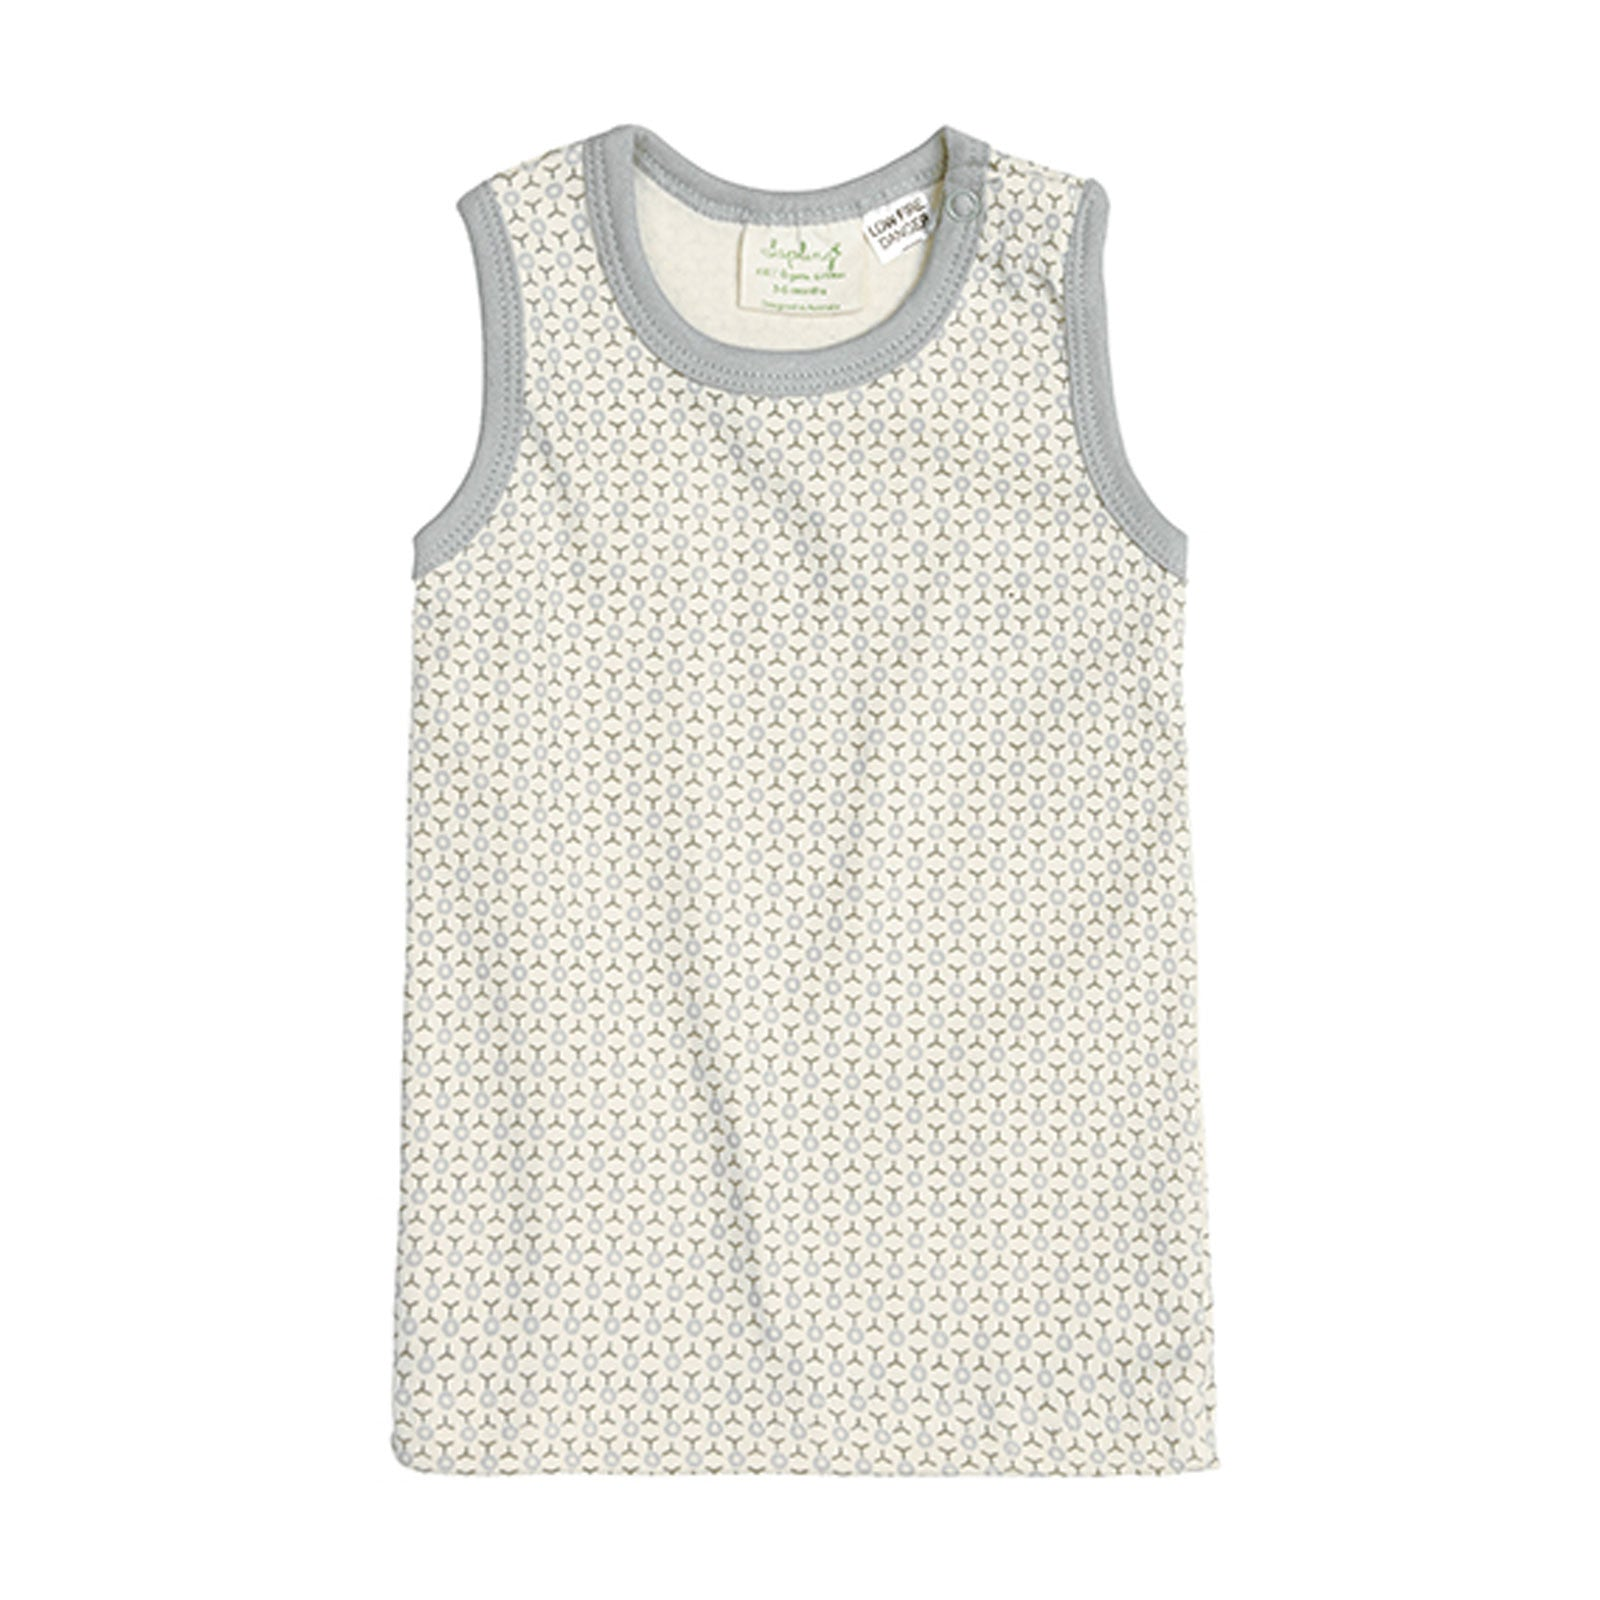 Sapling Child Essentials Tank Sapling Child Baby & Toddler Clothing 3-6M / Dove Grey at Little Earth Nest Eco Shop